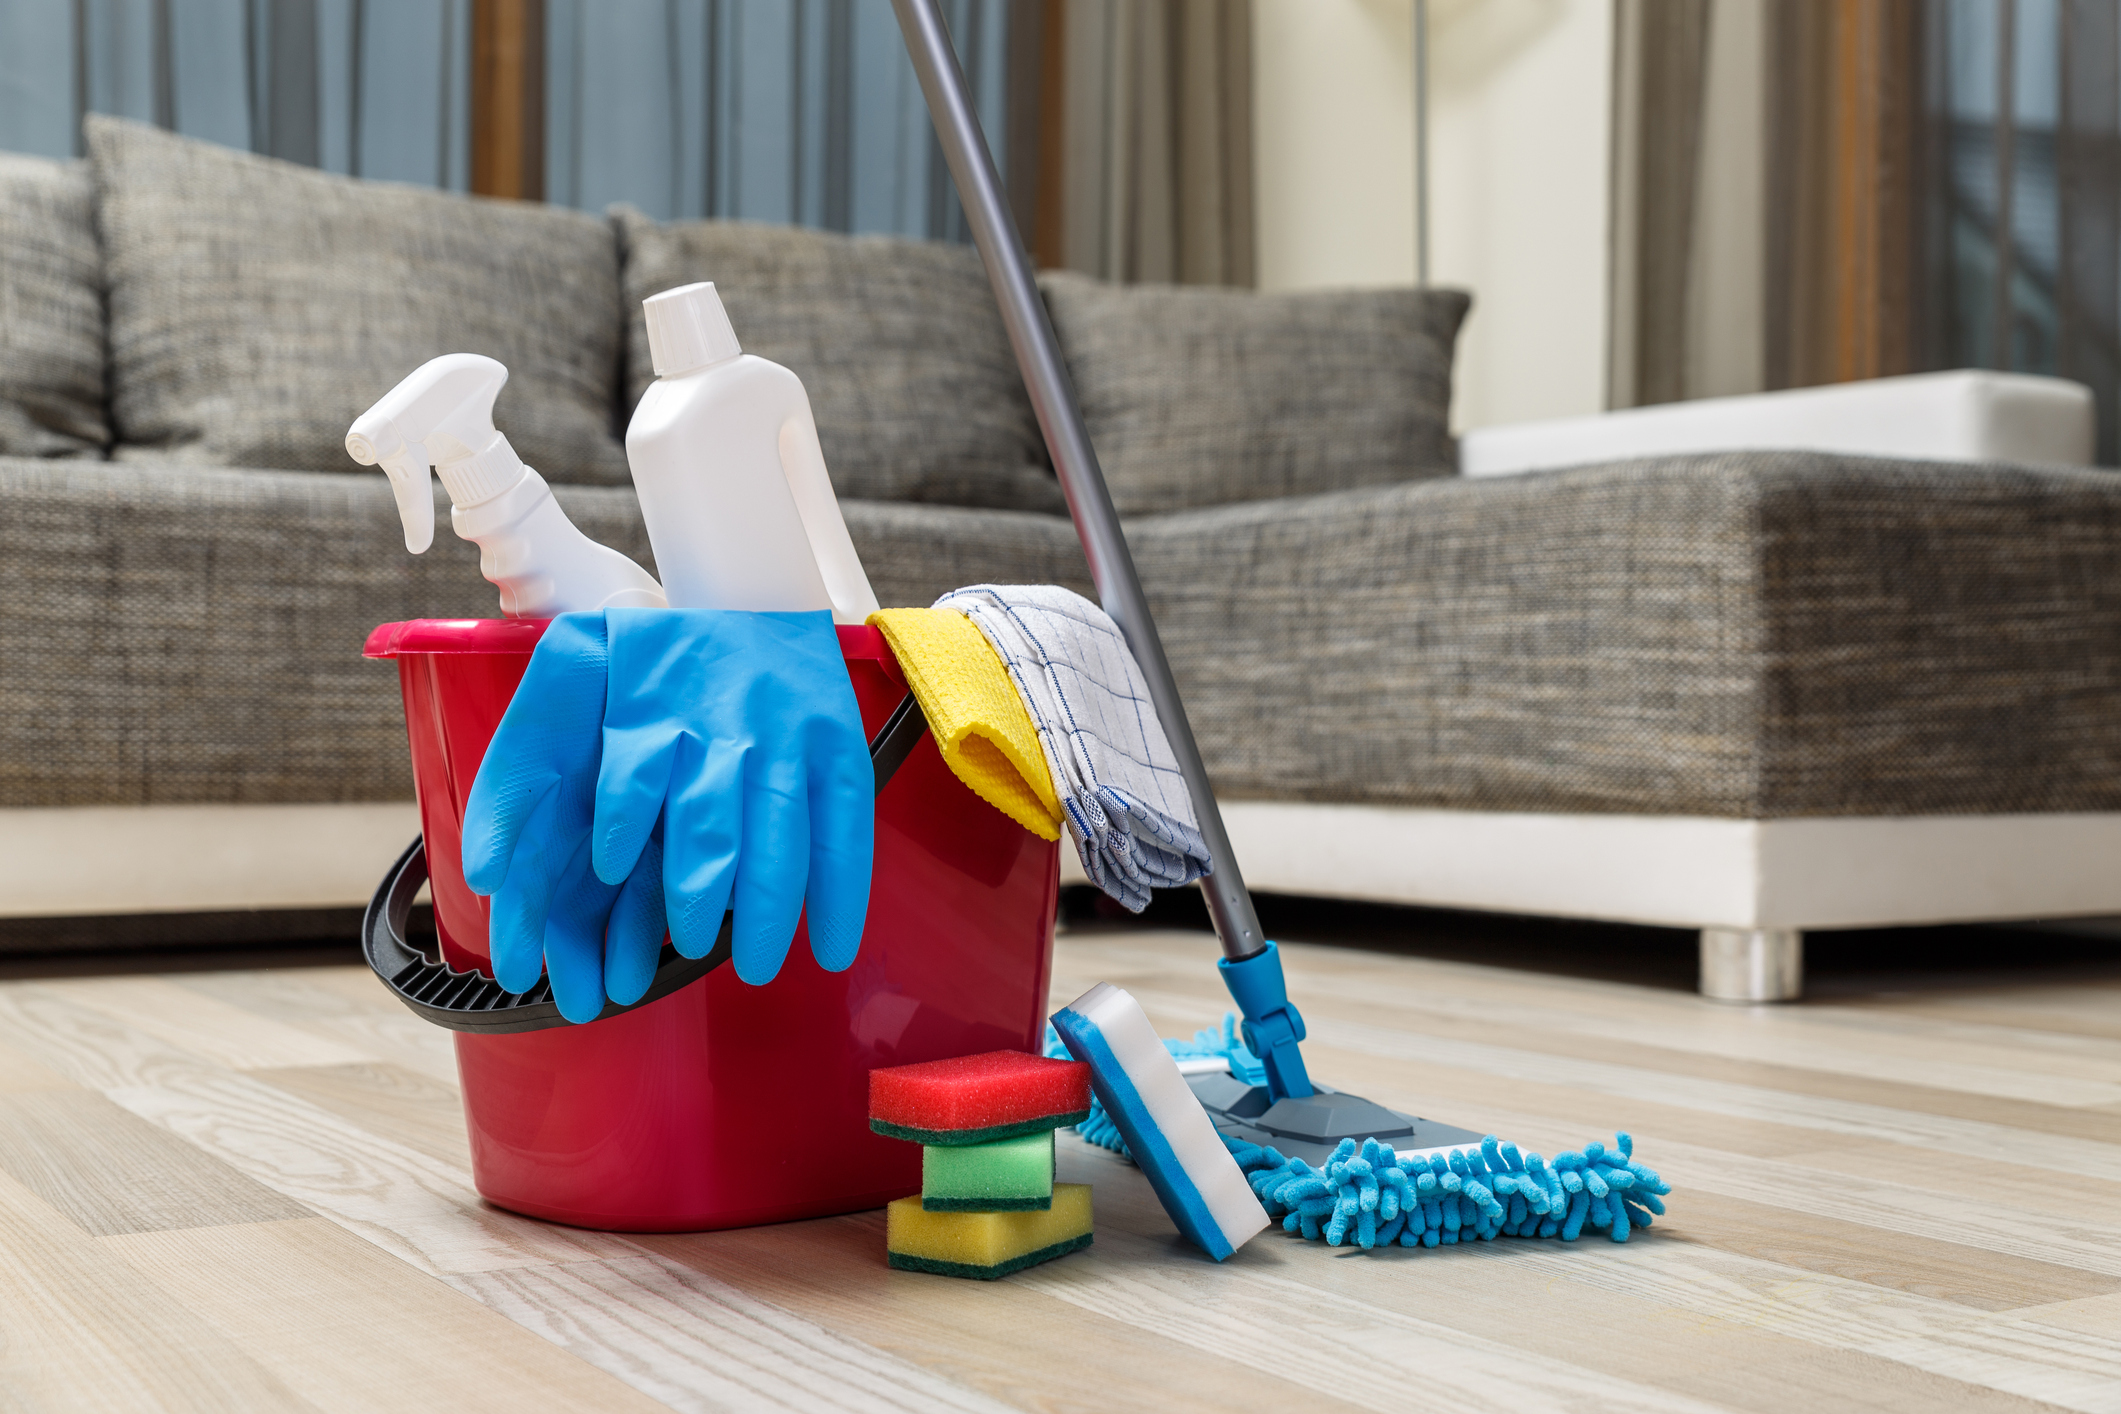 EXTRA SERVICES: - Inside of CabinetsInside of FridgeInside of Oven Interior/Exterior WindowsWall CleaningCarpet Cleaning